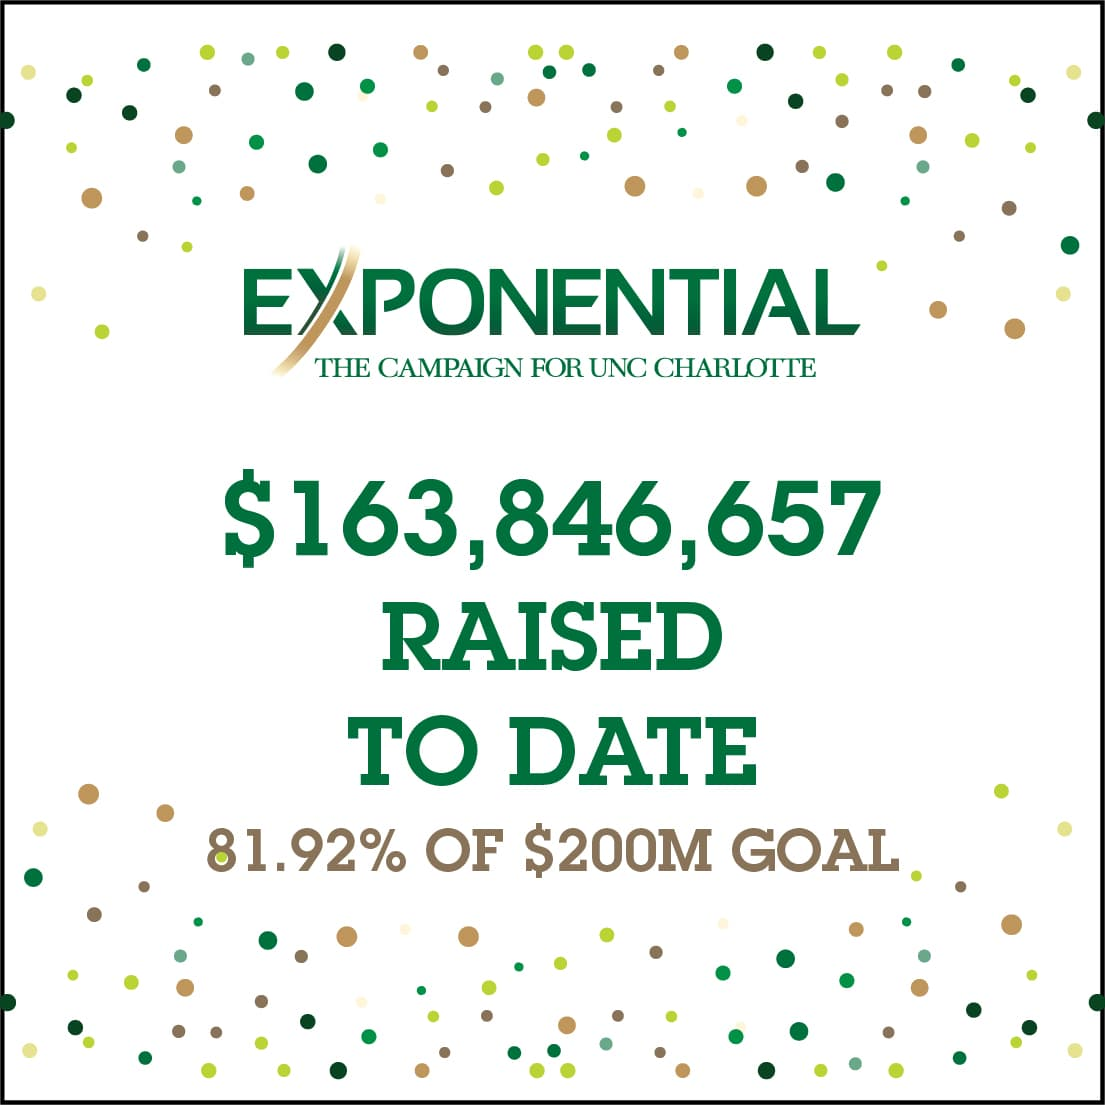 Exponential: $163,846,657 raised to date - 81.92% of $200M goal